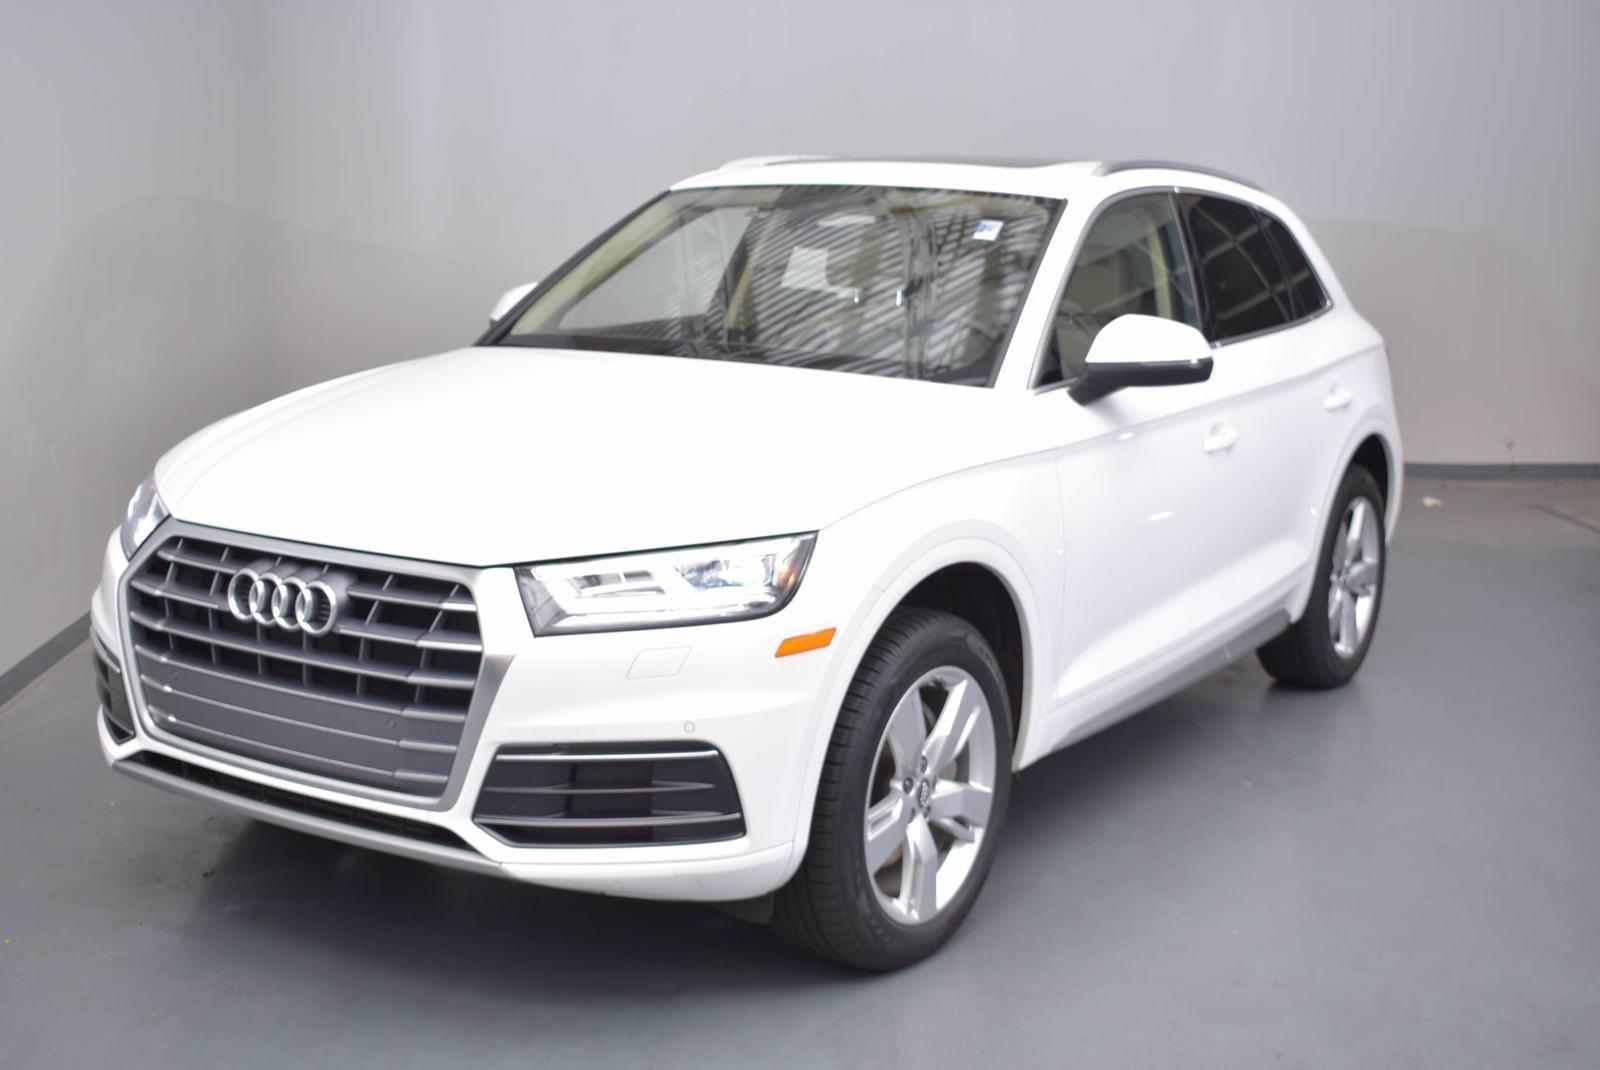 2018 Audi Q5 Vehicle Photo in Cary, NC 27511